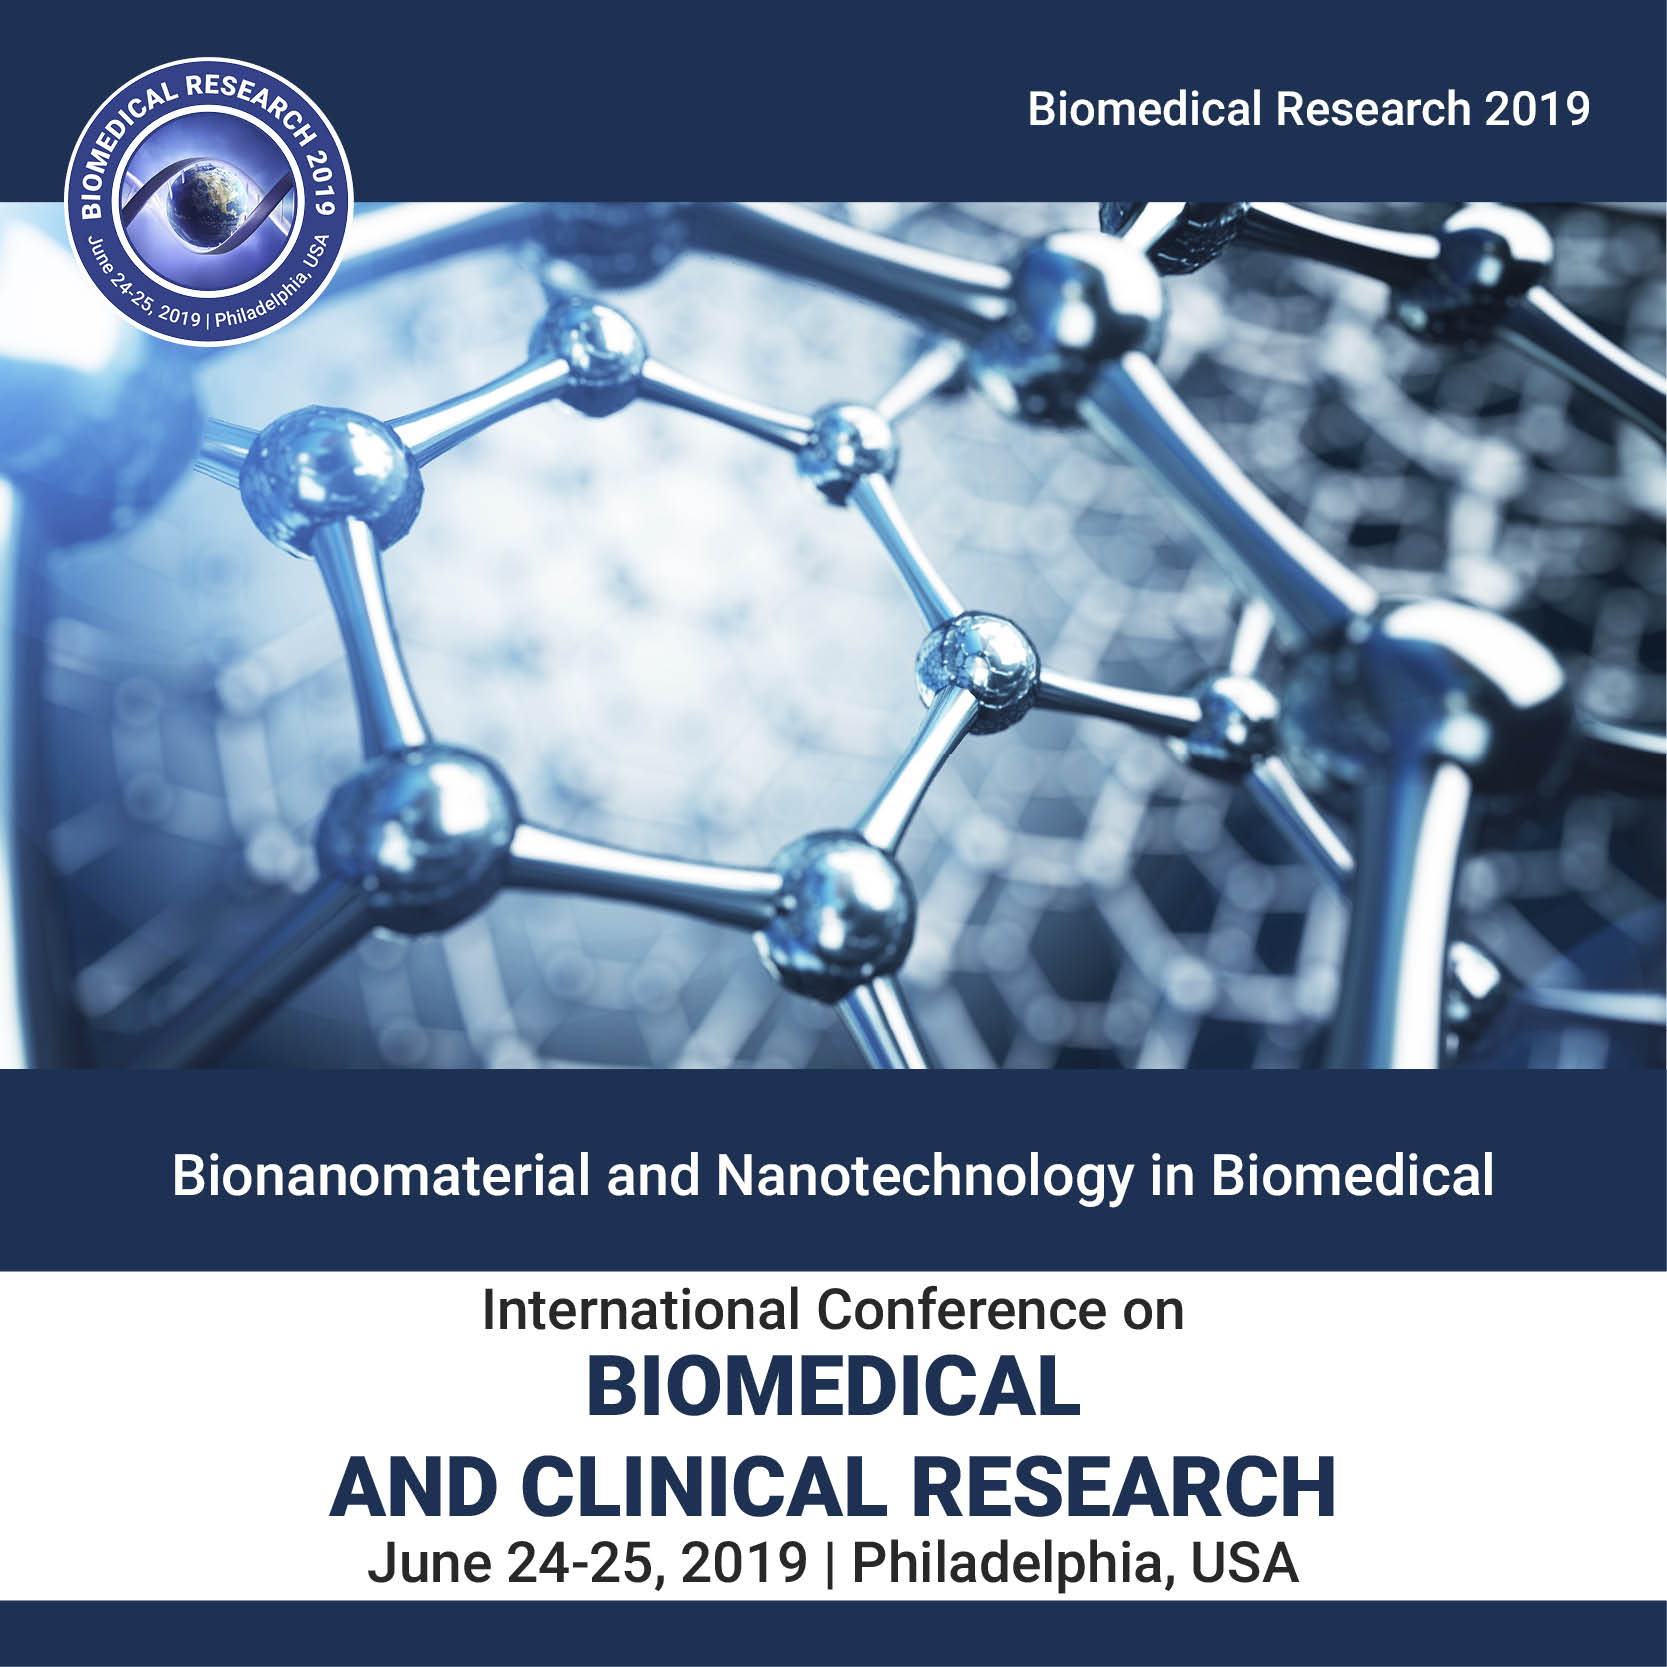 Bionanomaterial and Nanotechnology in Biomedical  Photo